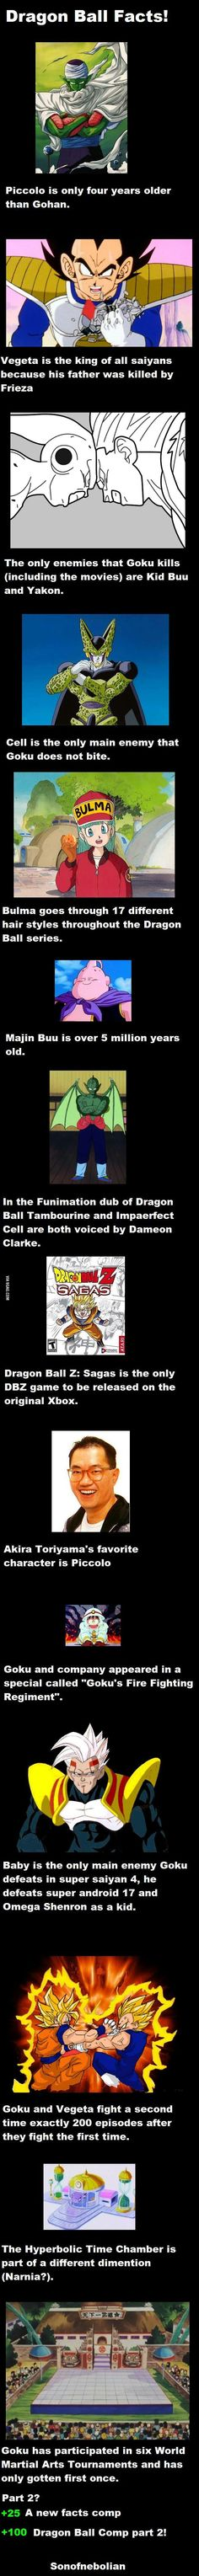 Dragon Ball Facts. I knew most of these. My favorite is the first one! I think that's hilarious!!!